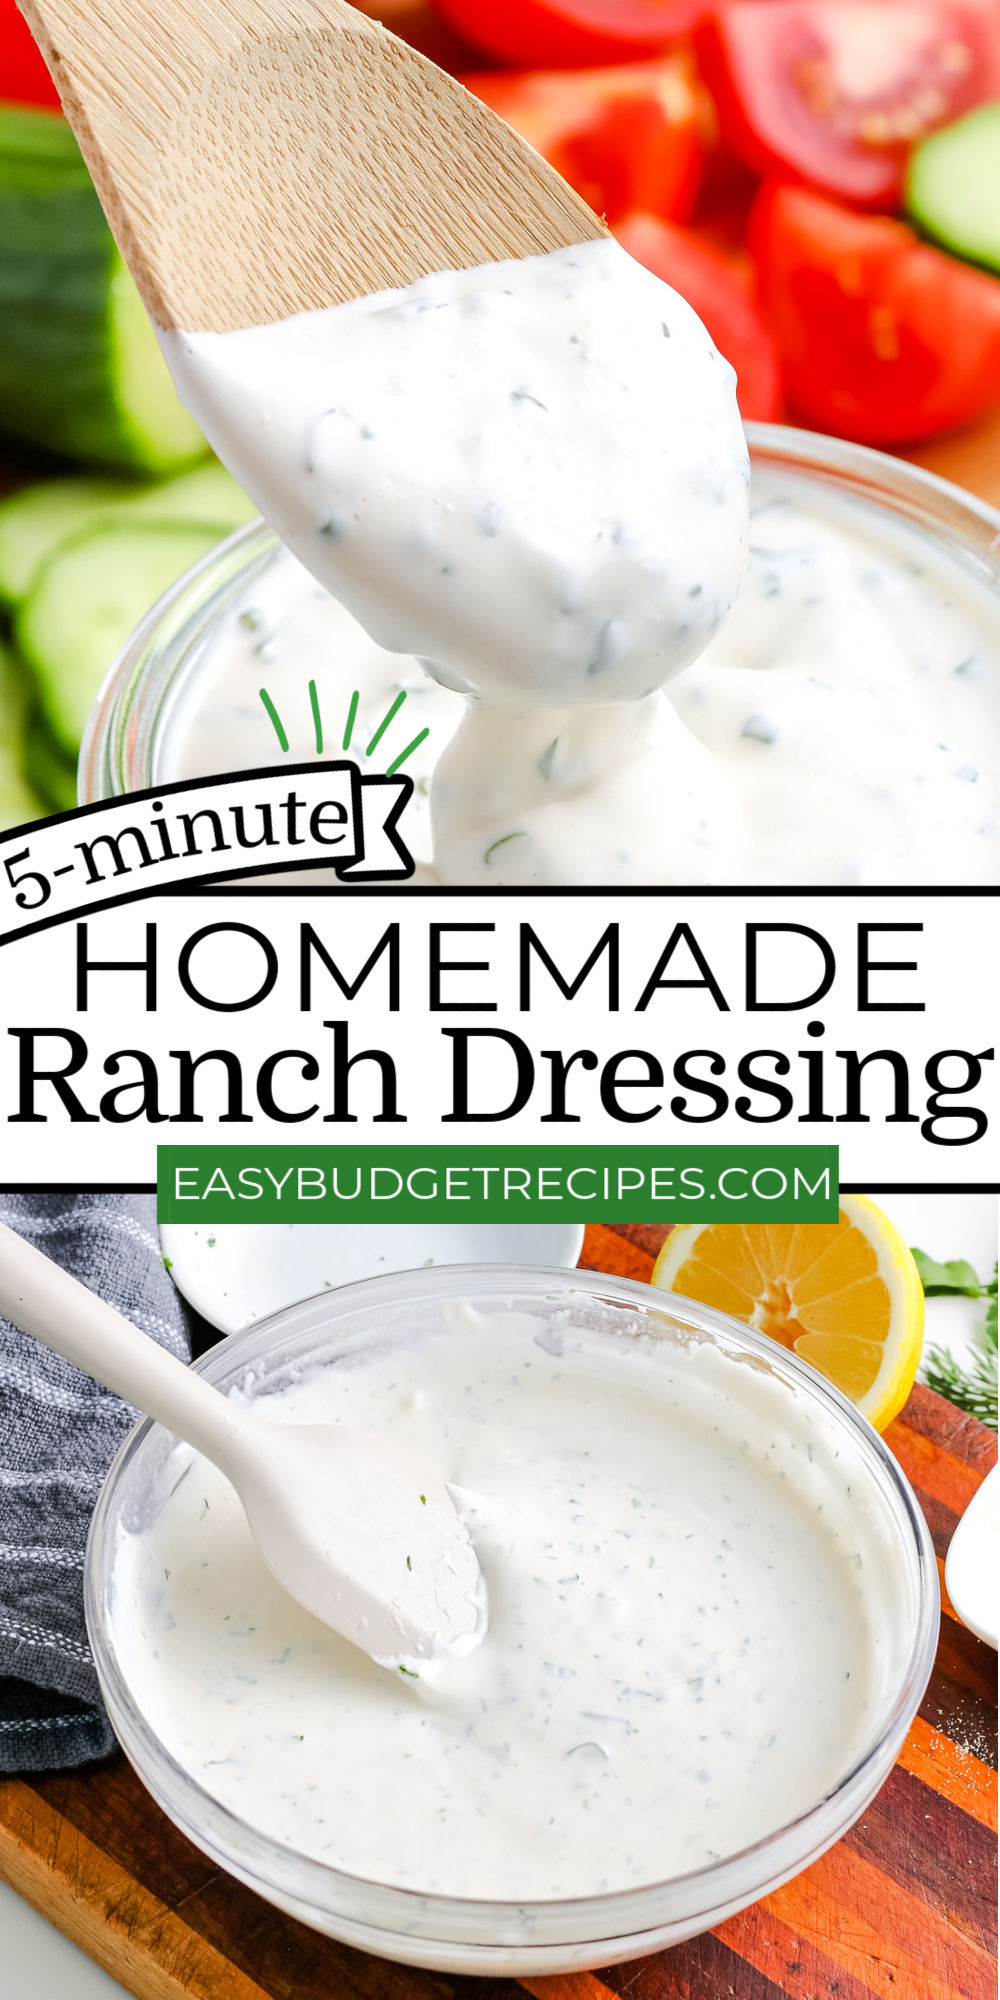 This easy Homemade Ranch Dressing recipe is so creamy and packed with herbs and so much flavor. You'll never go back to the bottled stuff again!  via @easybudgetrecipes